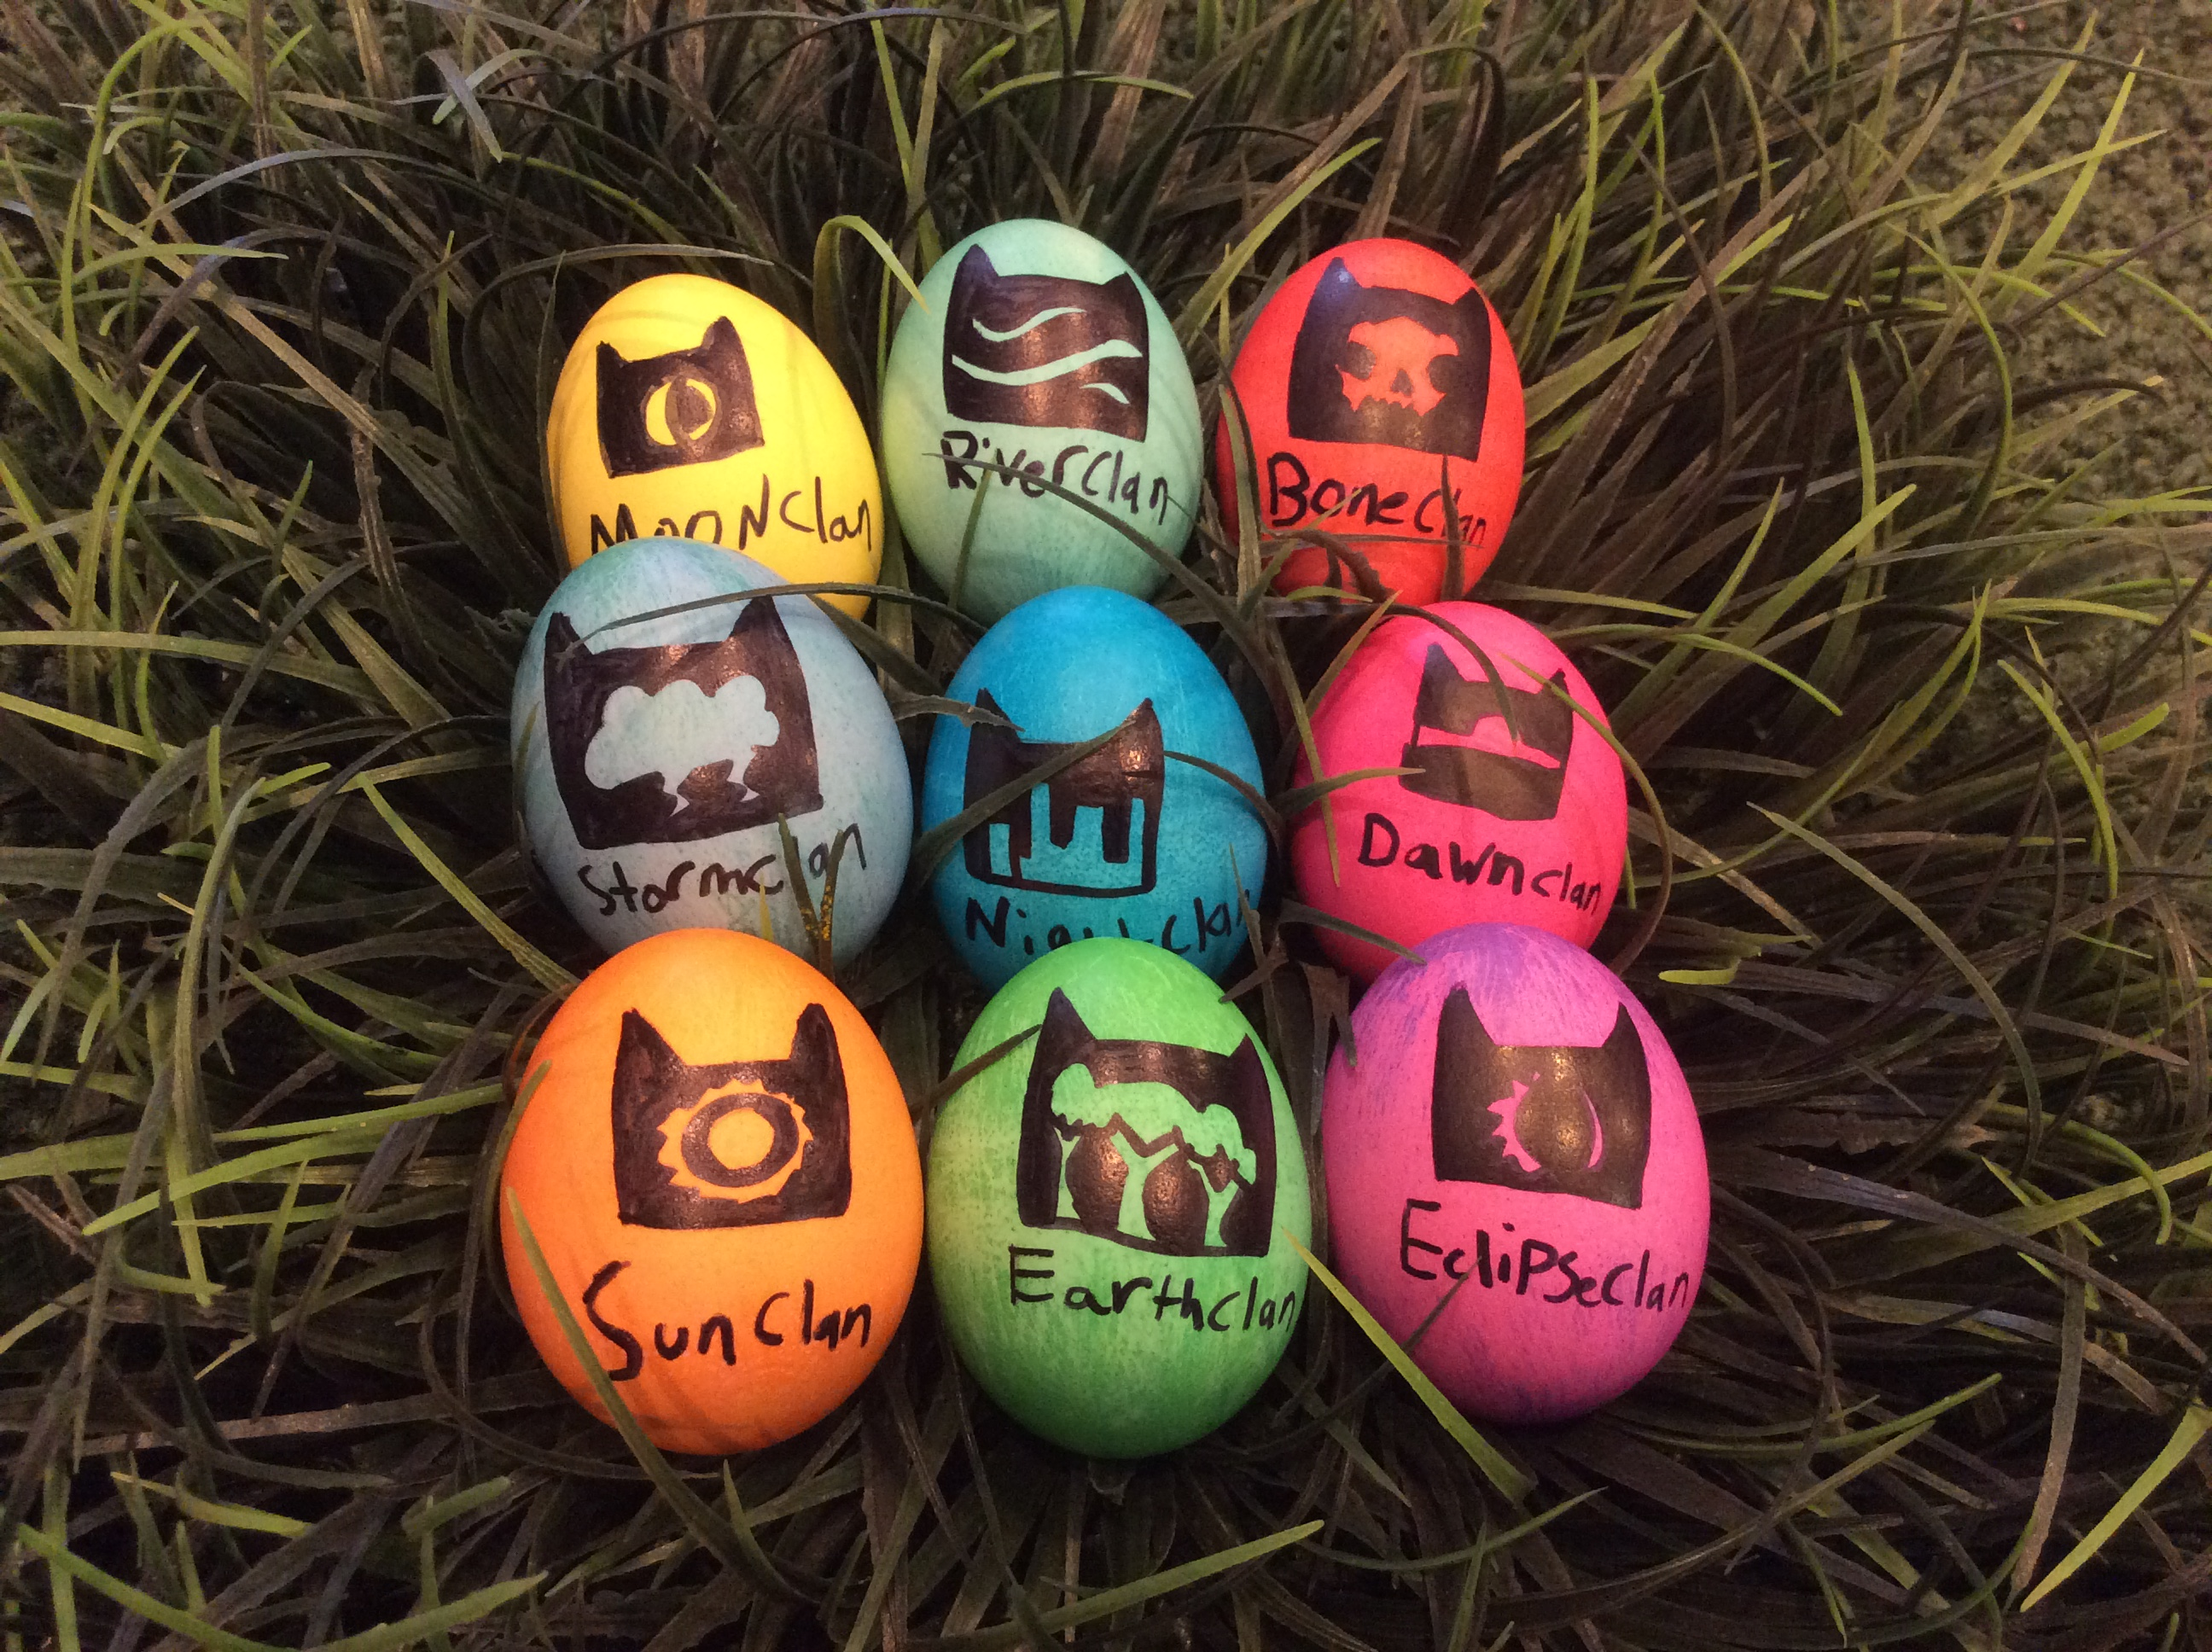 Easter eggs-all the clans